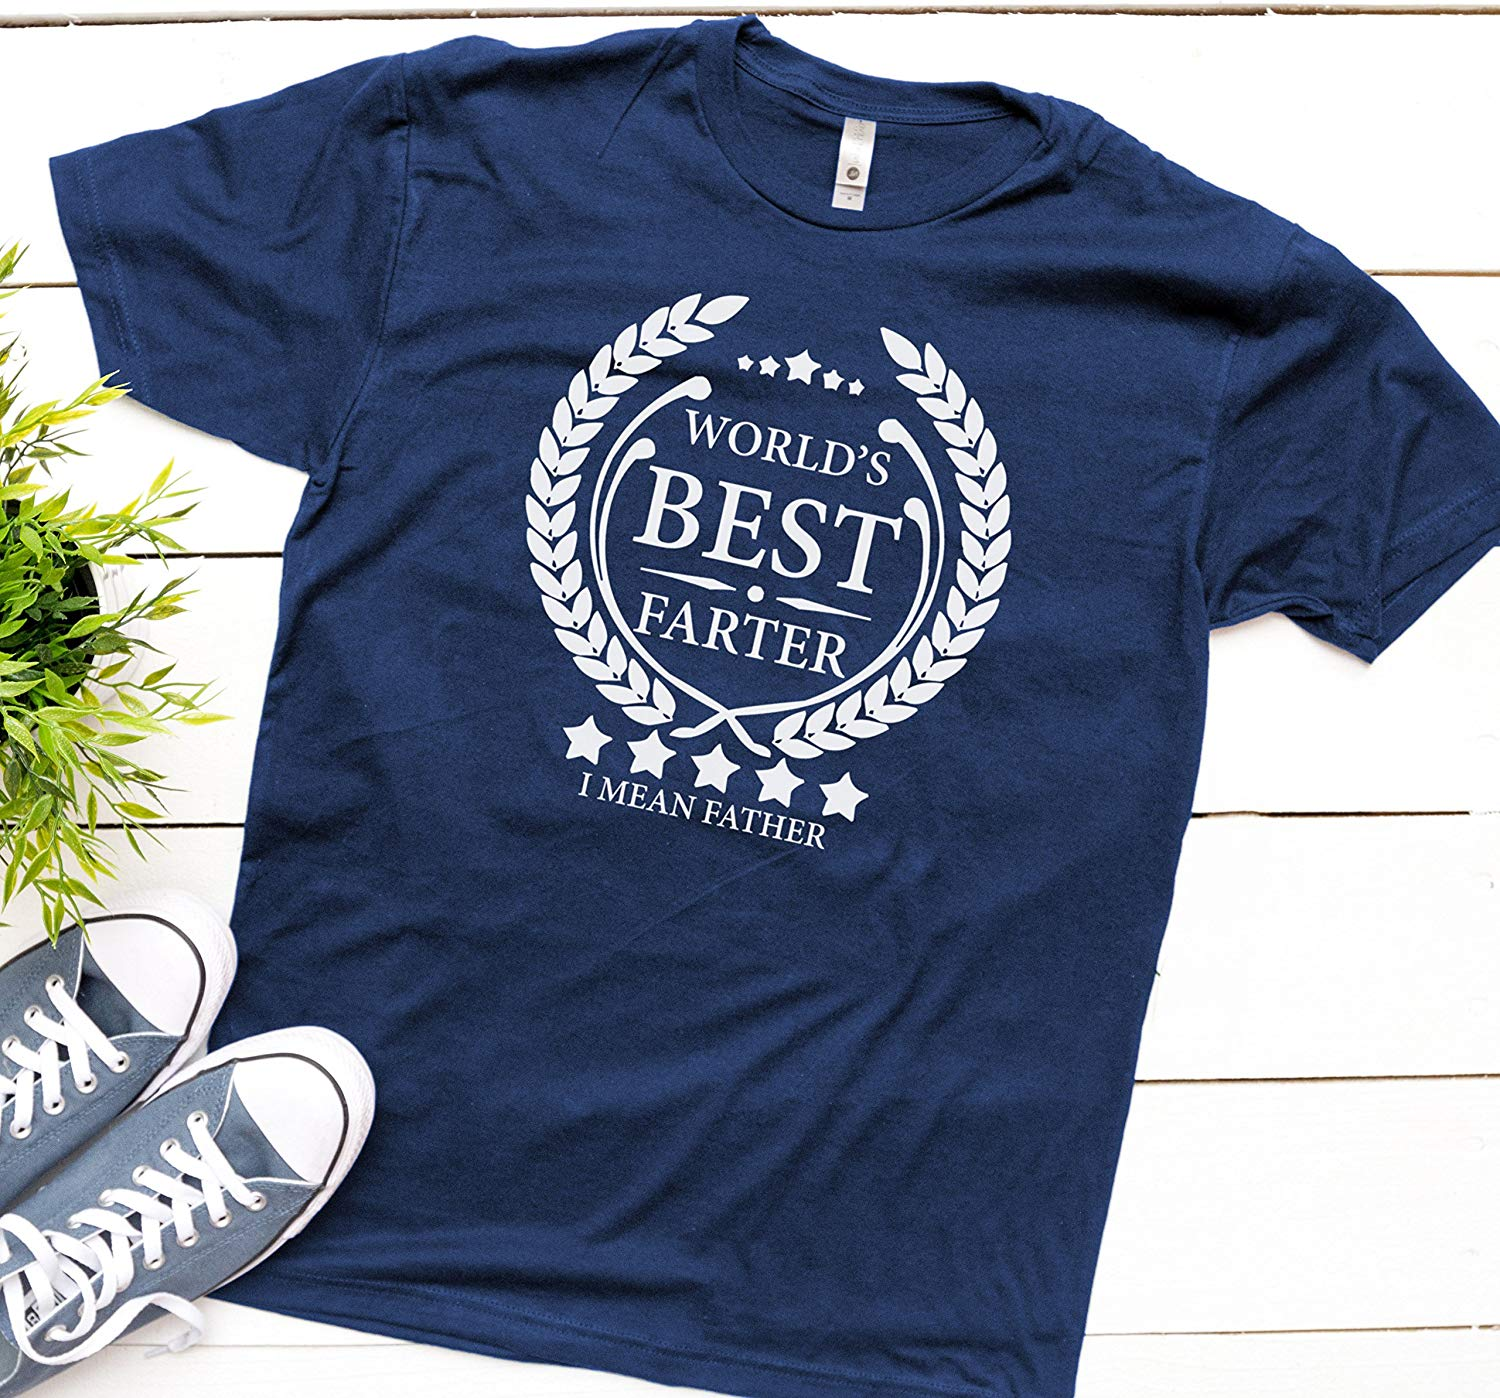 8eb15c29 Get Quotations · World's Best Farter, I Mean Father T Shirt Fathers Day  Gift, Husband Shirt Funny